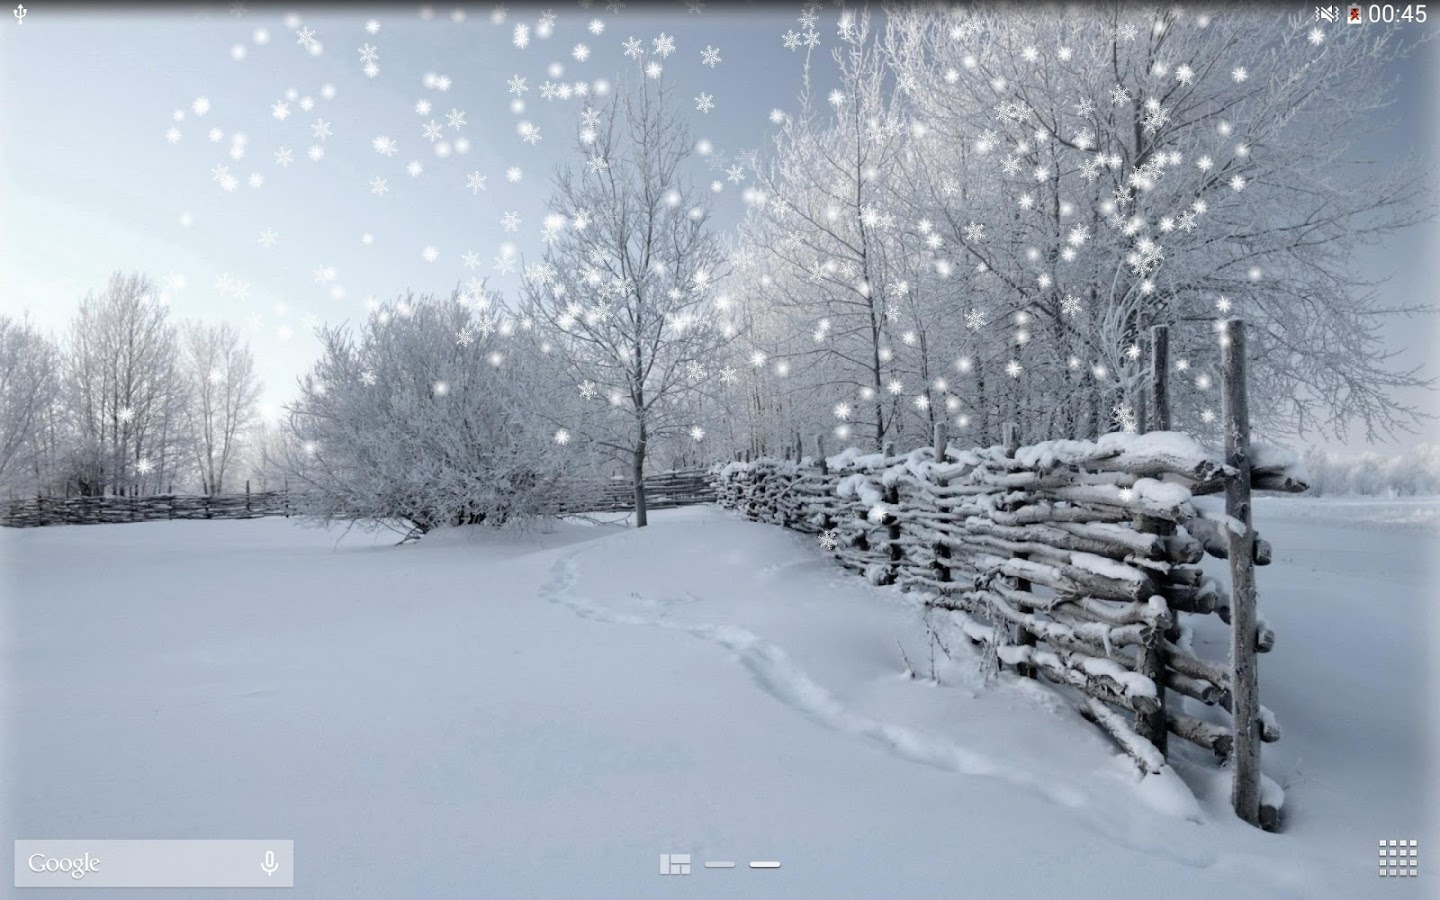 Free Animated Falling Snow Wallpaper Winter Snow Lwp No Ad Android Apps On Google Play